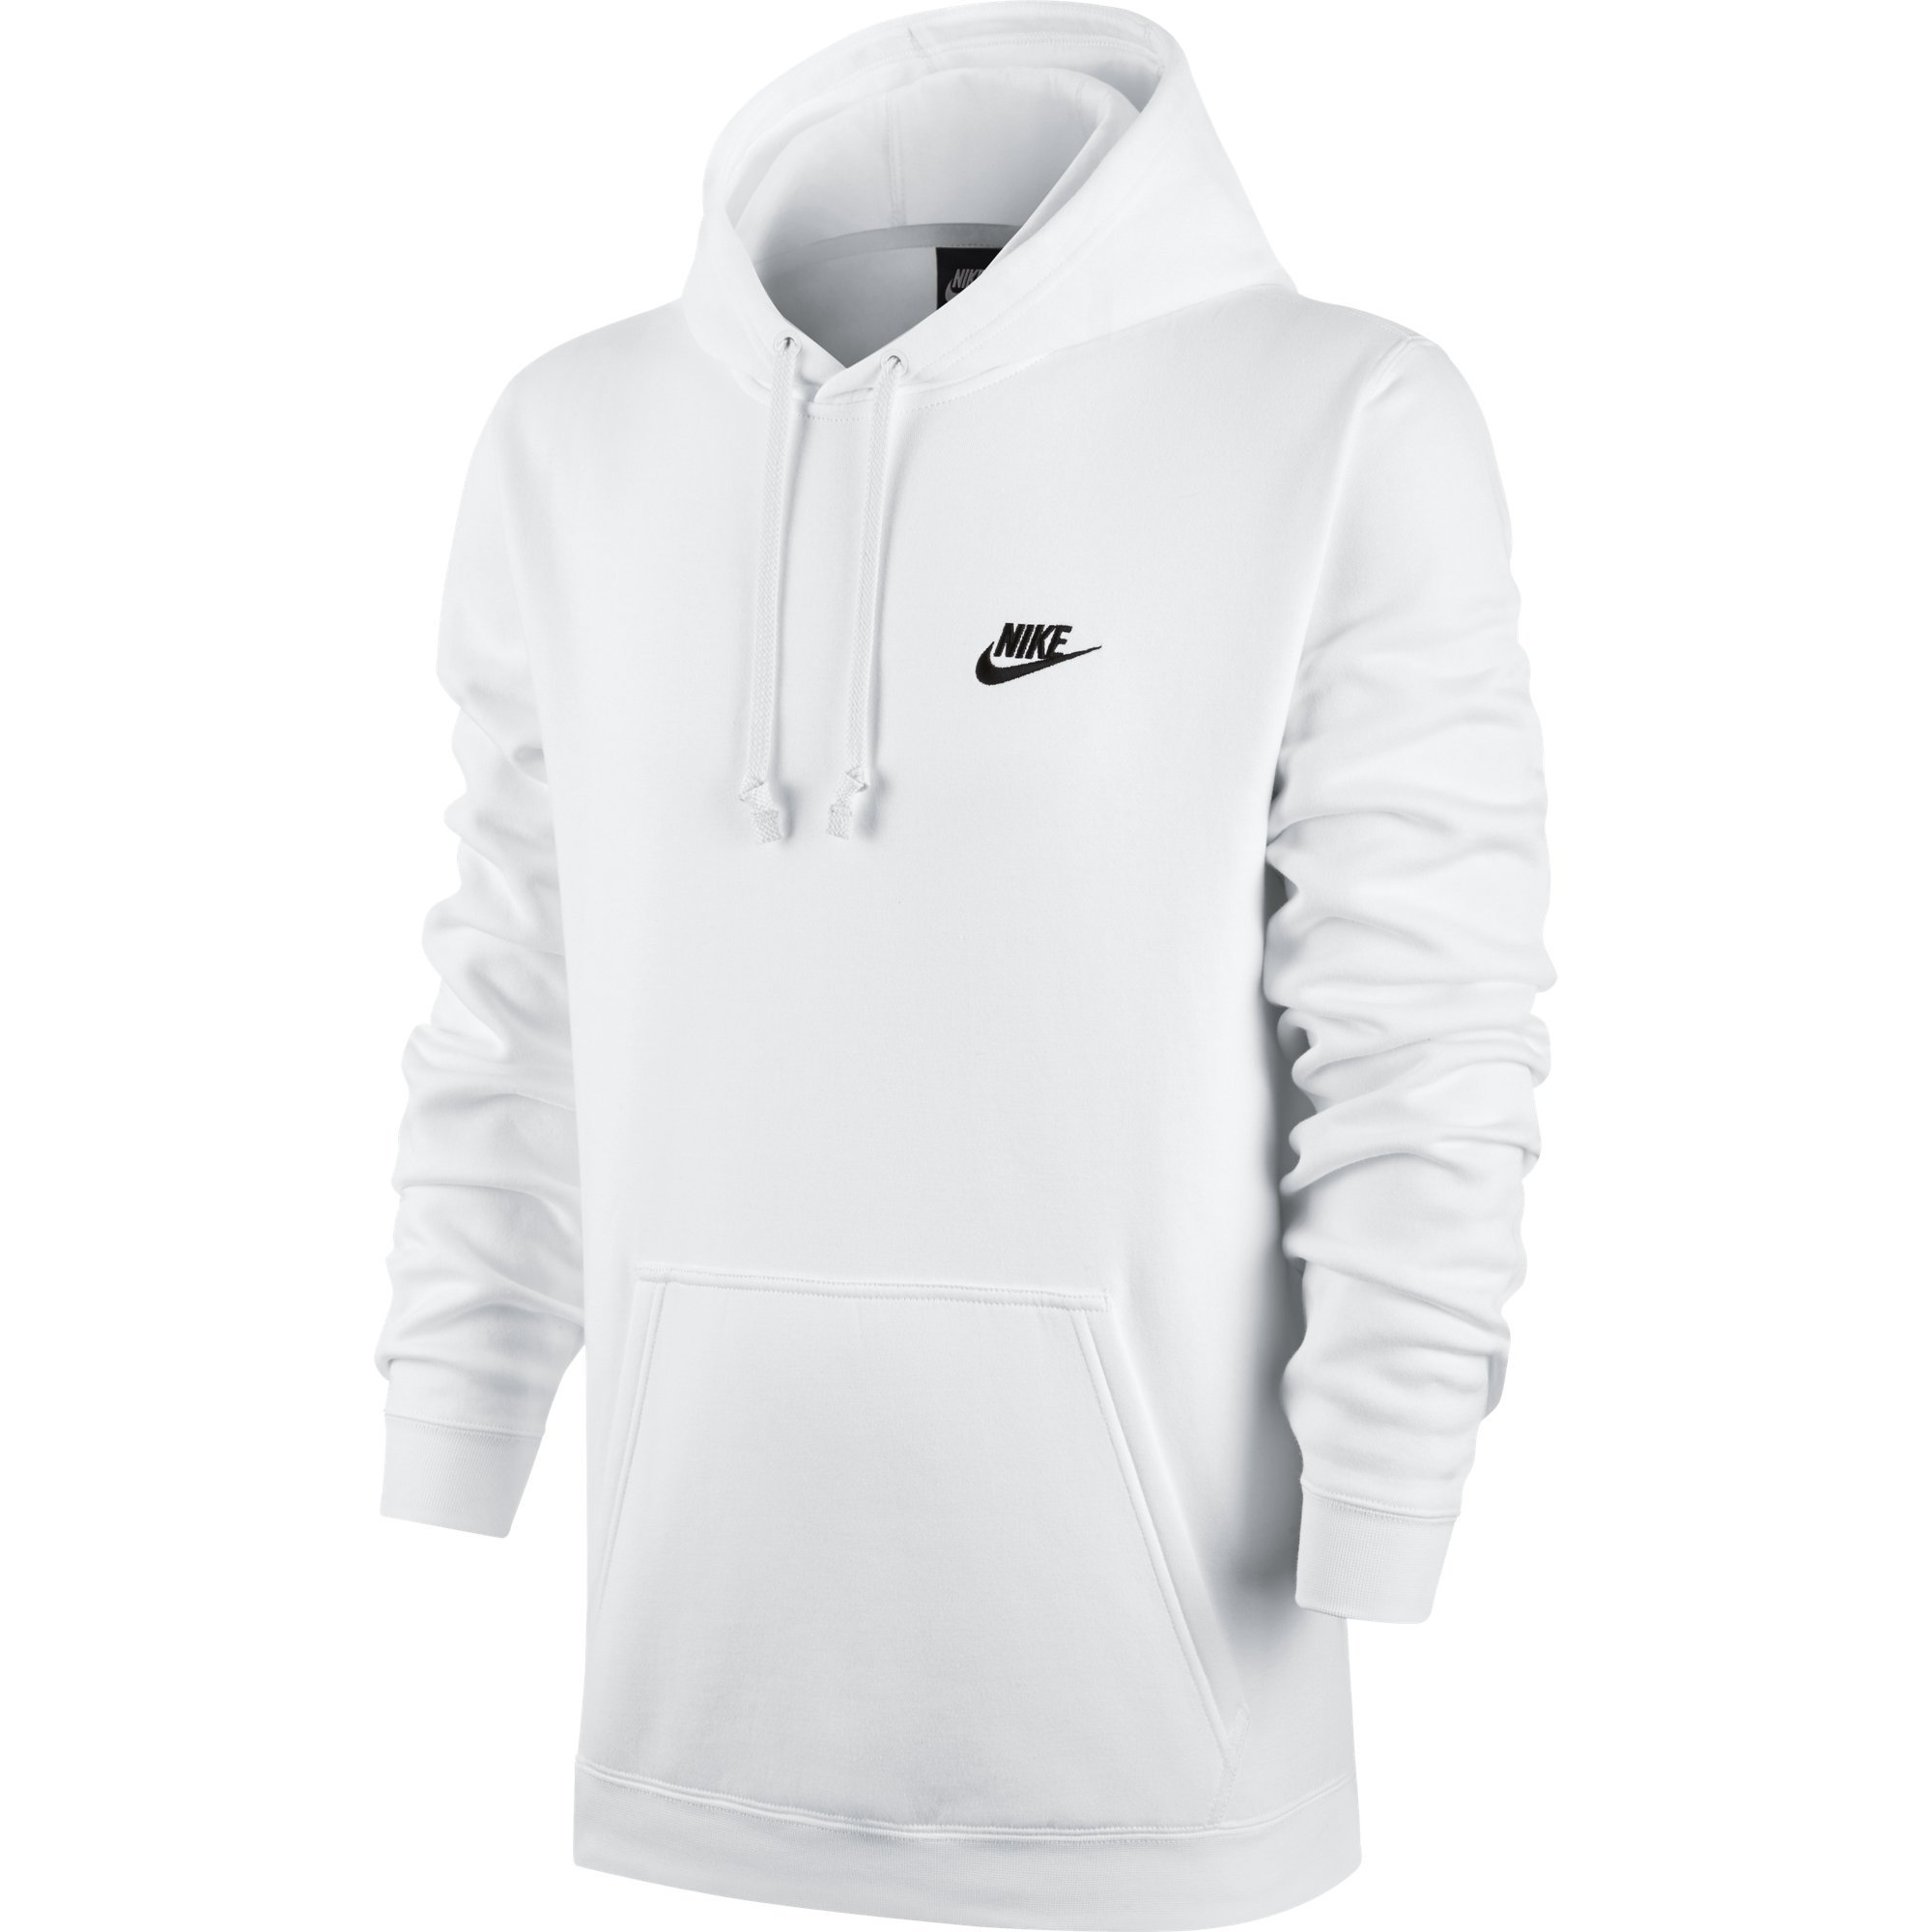 Men's Nike Sportswear Club Pullover Hoodie, Fleece Sweatshirt for Men with Paneled Hood, White/White/Black, XS by Nike (Image #1)